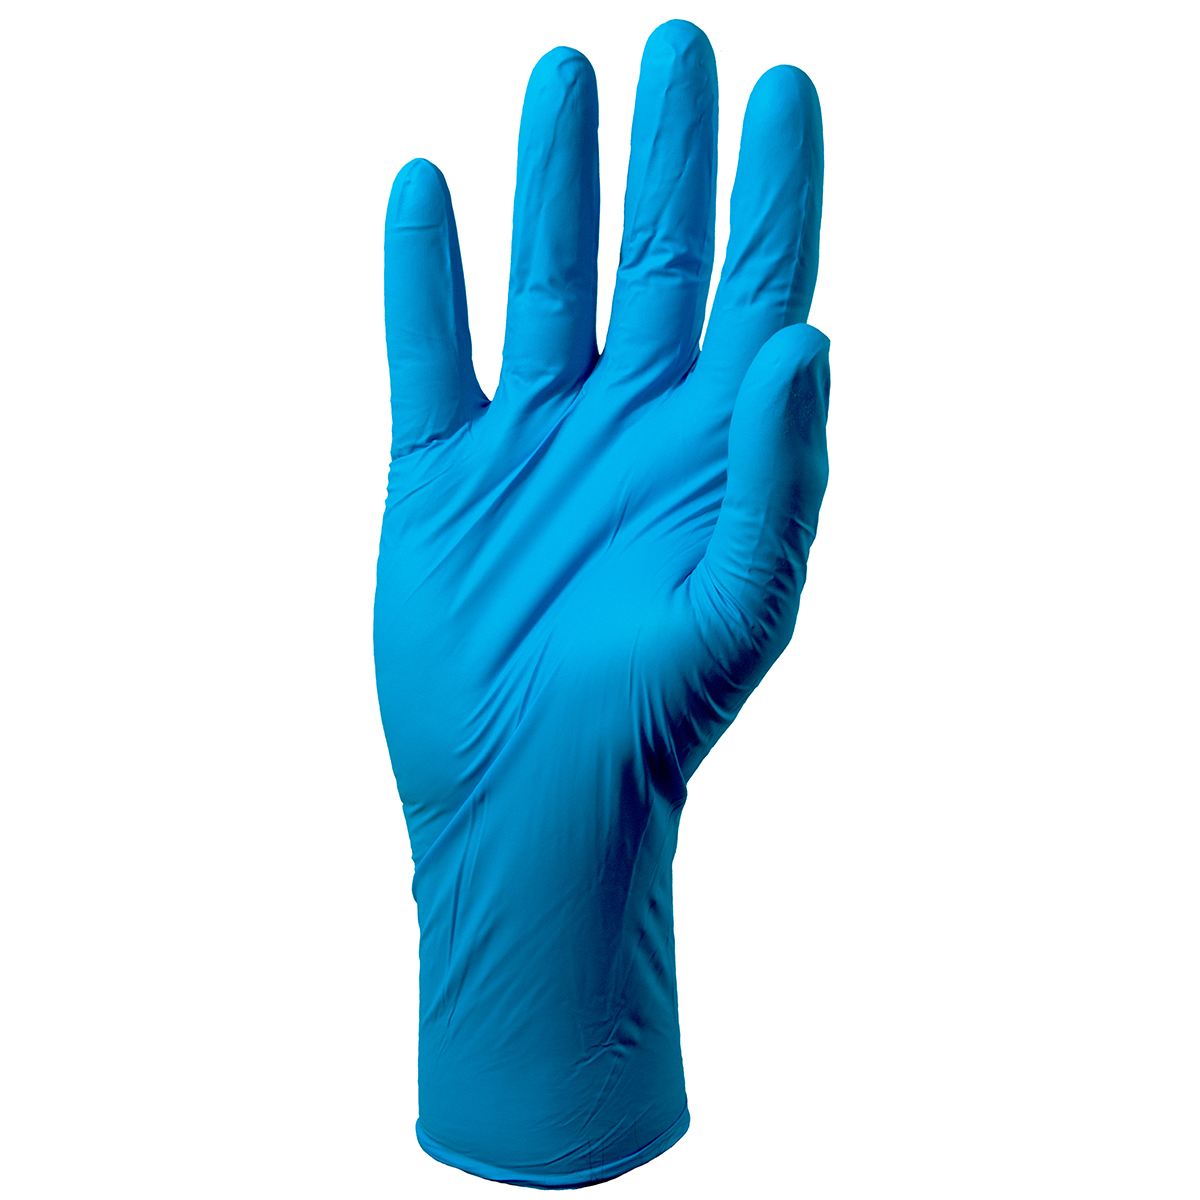 Pack of 100 Medium Extra Long Cuff Nitrile Gloves